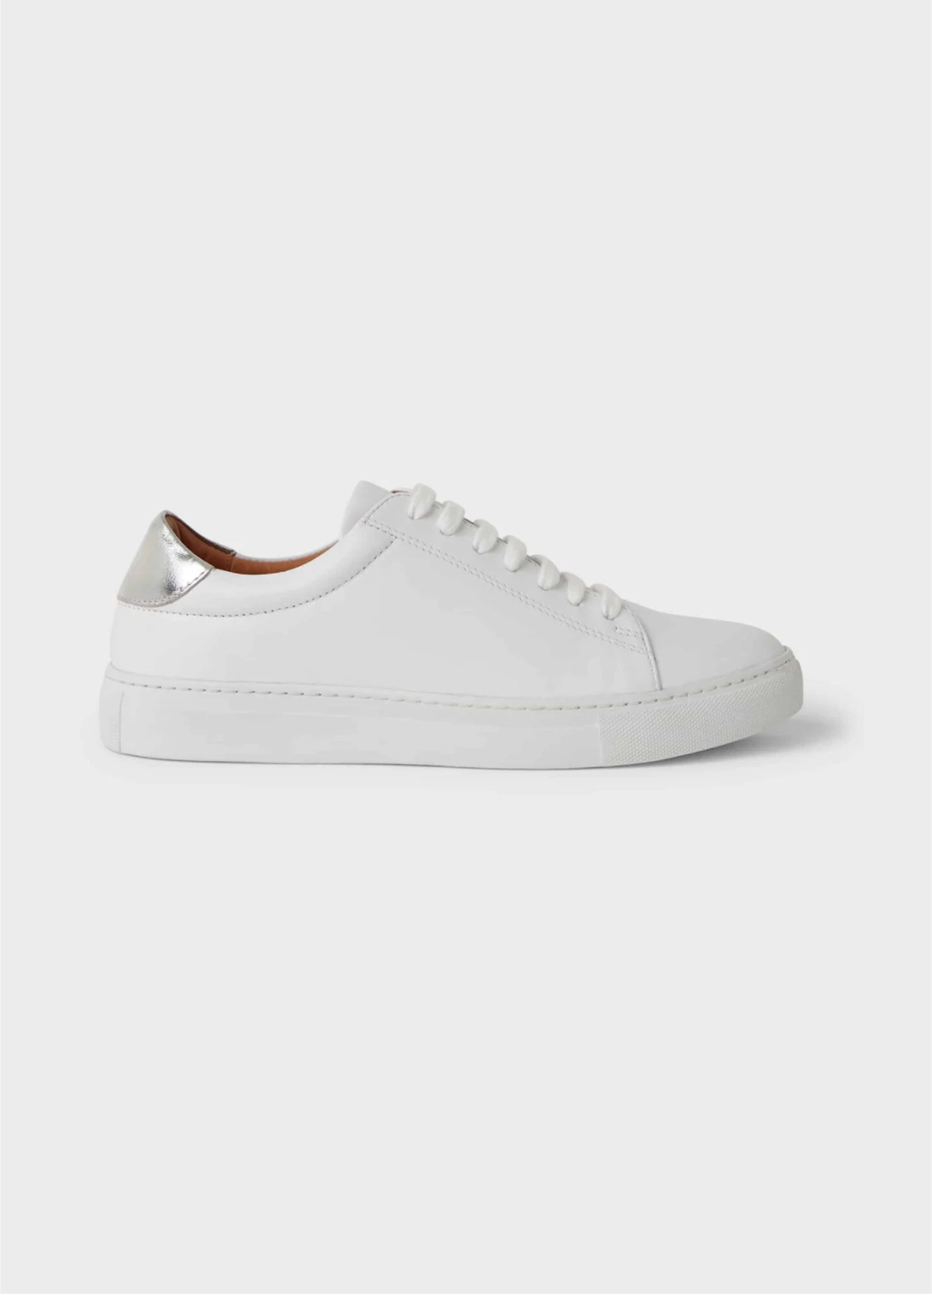 White leather trainer from Hobbs.